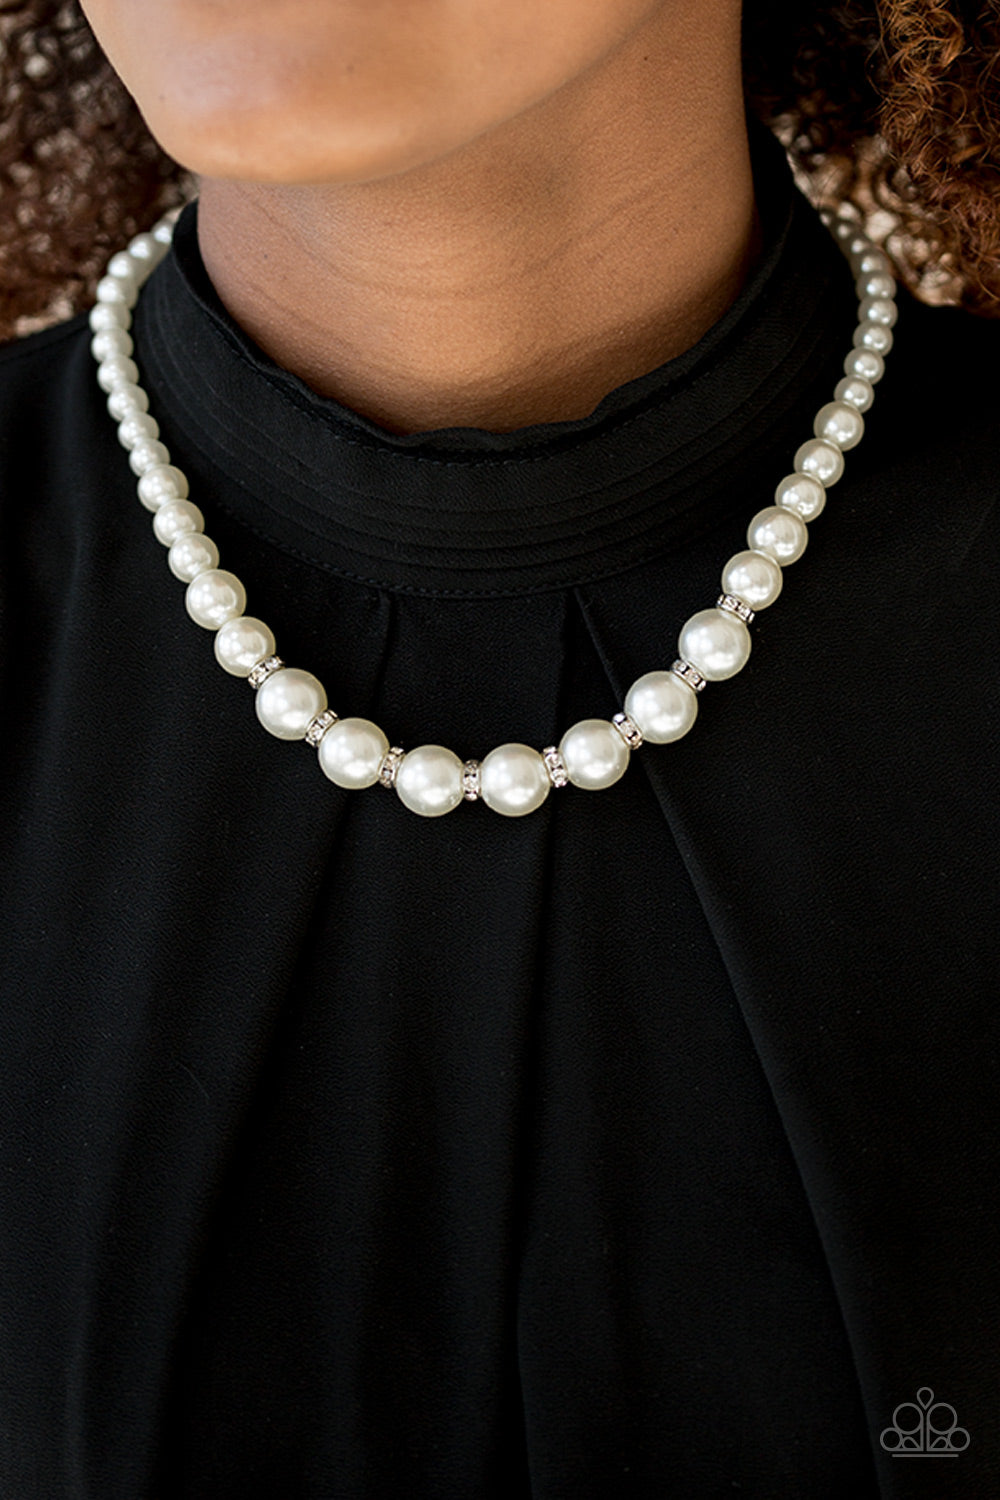 Gradually increasing in size near the bottom, classic white pearls drape below the collar. Rhinestone encrusted rings are sprinkled between the dramatic pearls, adding sparkling accents to the timeless pearl palette. Features an adjustable clasp closure.  Sold as one individual necklace. Includes one pair of matching earrings.  Always nickel and lead free.